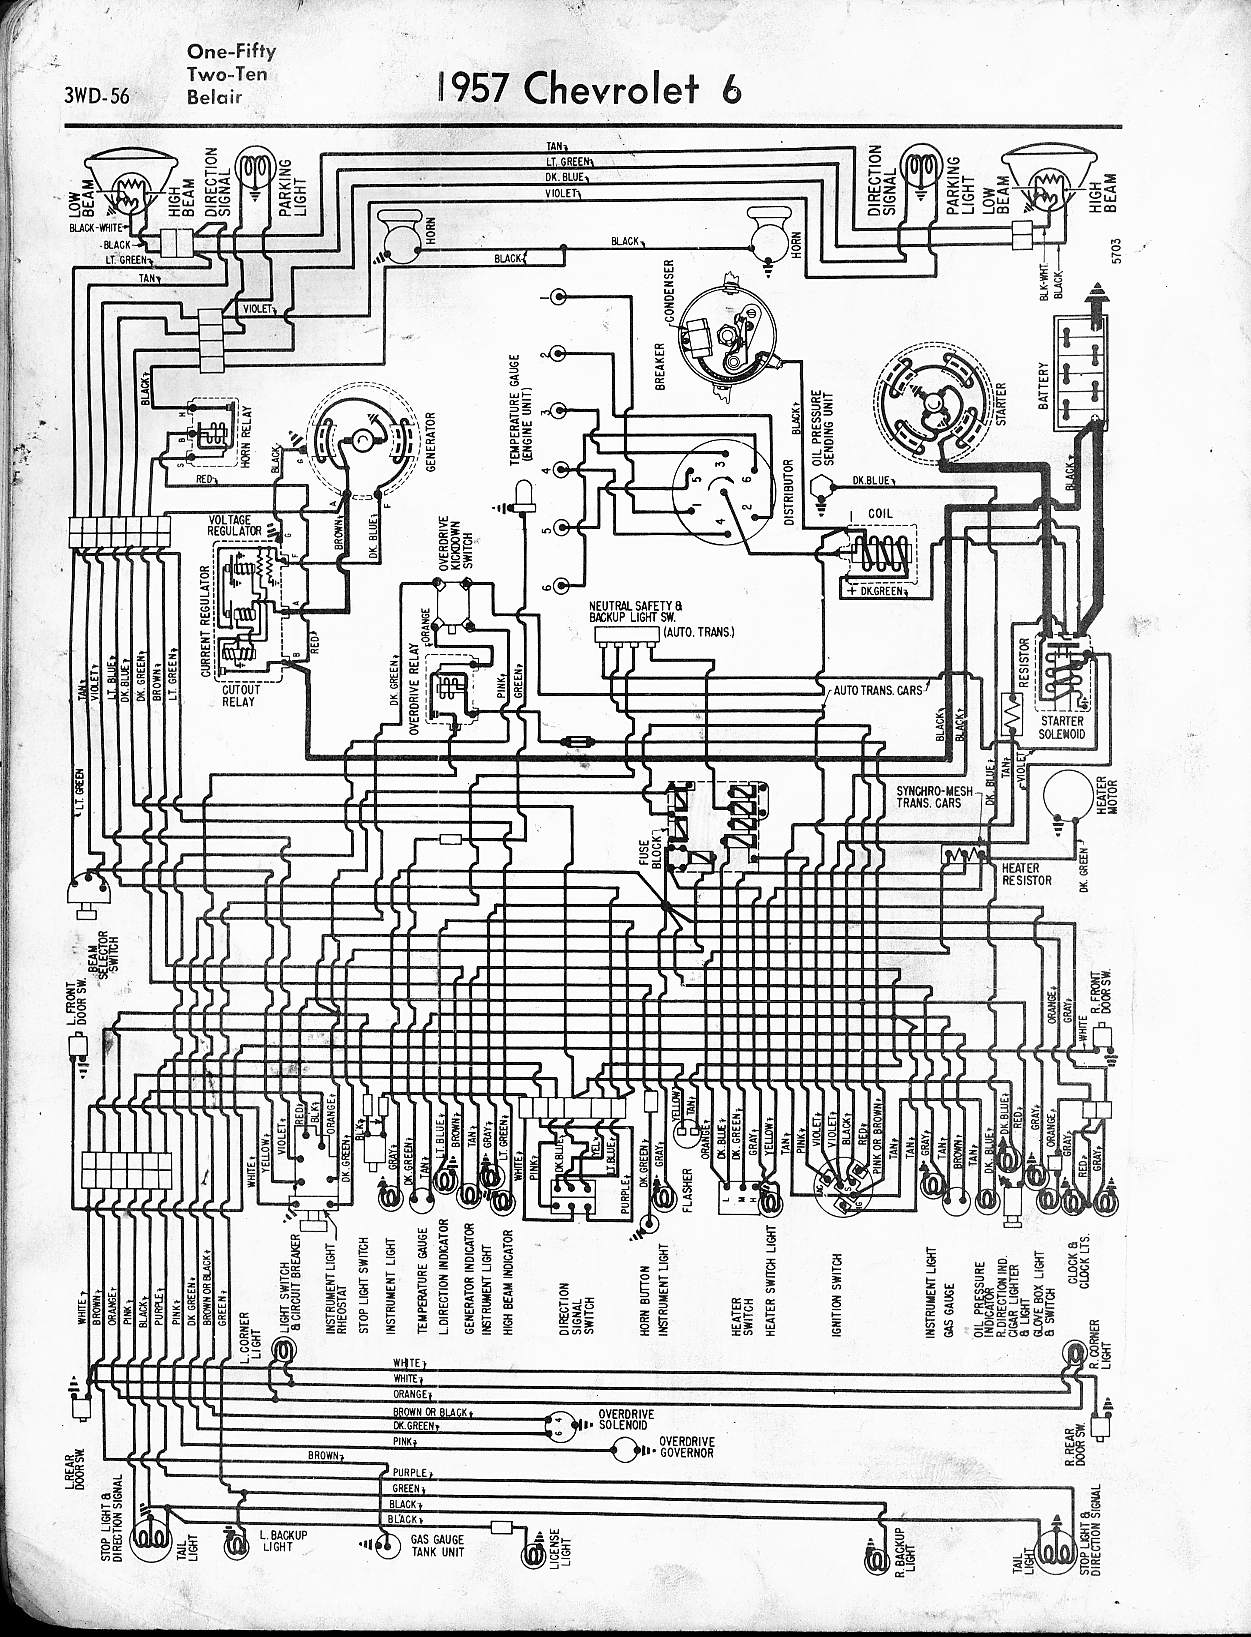 57 65 chevy wiring diagrams rh oldcarmanualproject com 98 Mustang Wiring Diagram 01 Mustang Wiring Diagram